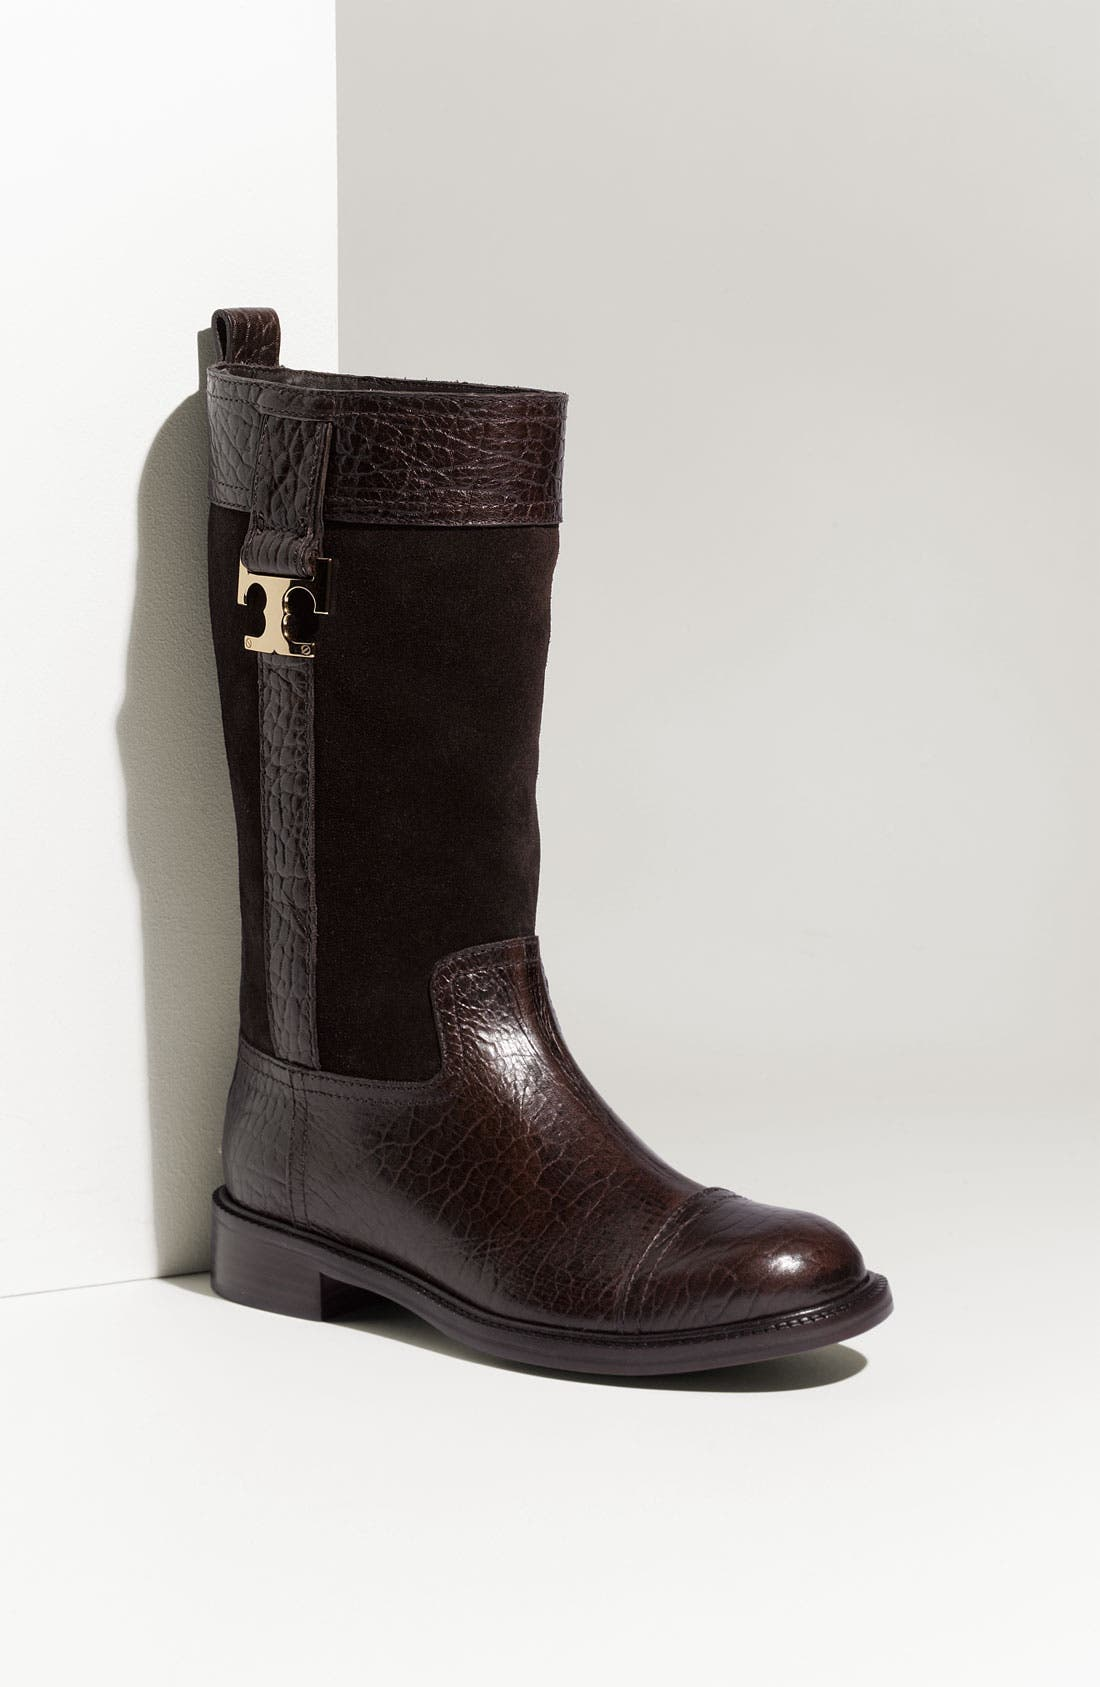 Main Image - Tory Burch 'Corey' Leather & Suede Boot